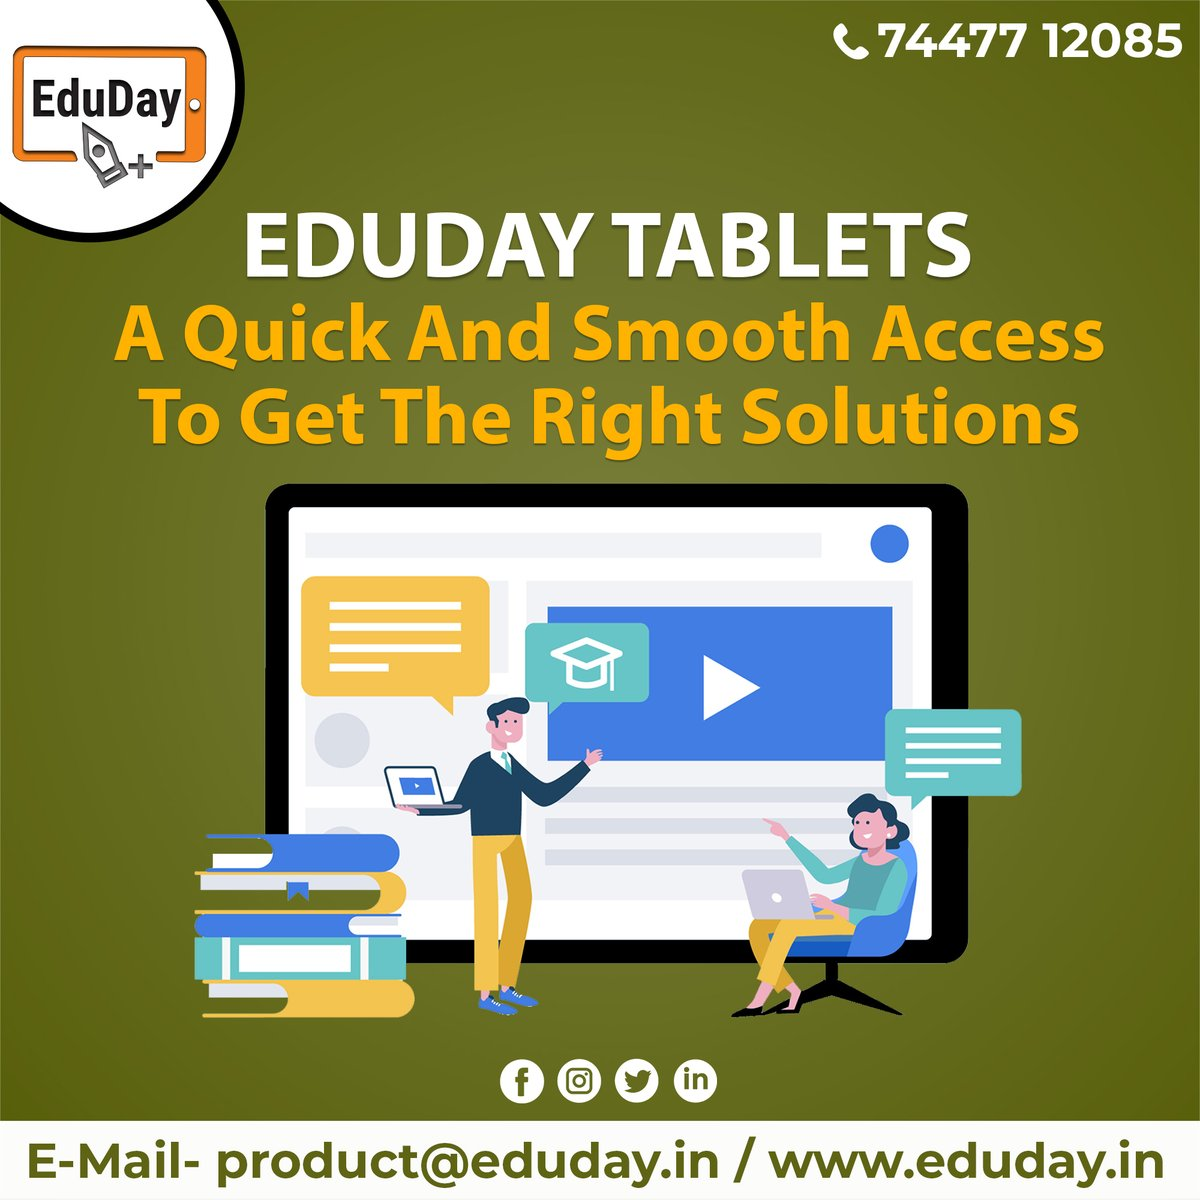 Transform Teaching, Inspire Learning and Deliver a world-class Student Experience.  Get in touch to know more:- Phone : +91 7447712085 E-Mail: product@eduday.in visit:- http://www.eduday.in  #eduday #edudayindia #pune #india #tab #tablets #CoachingInstitute #Coachingclassesspic.twitter.com/QVDvQdq65f